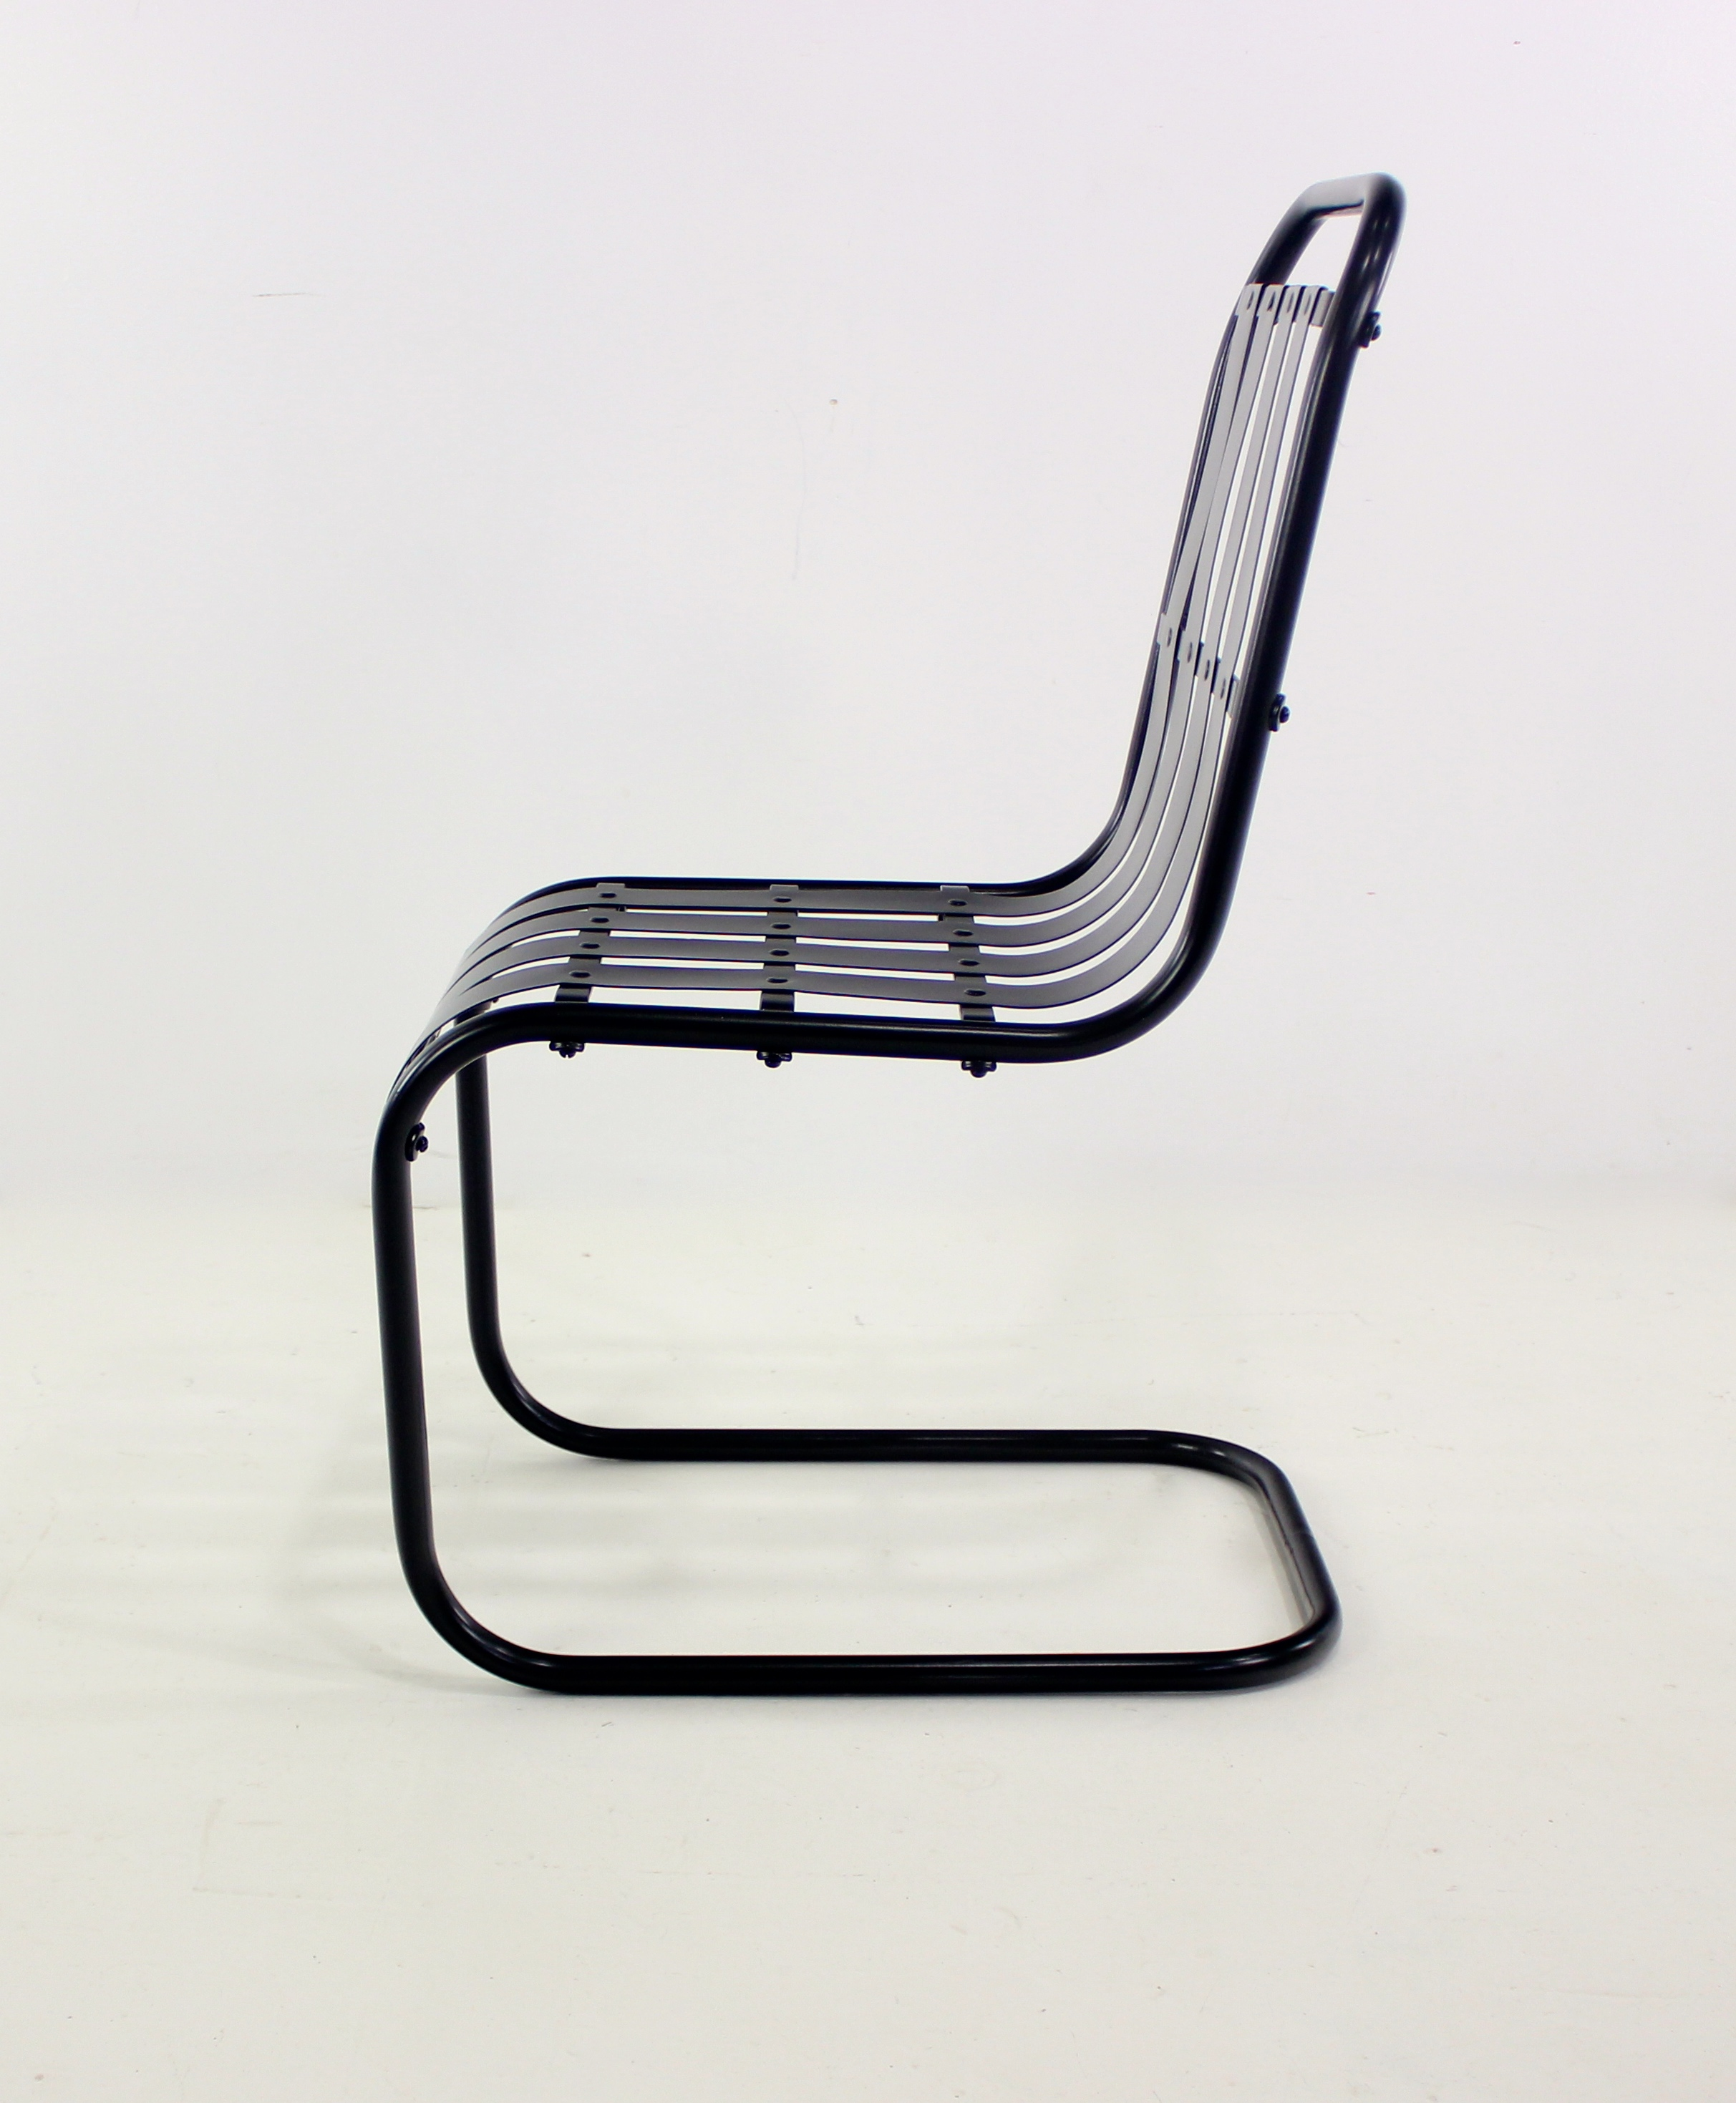 Four 1930s Streamline Moderne Indoor/Outdoor Chairs